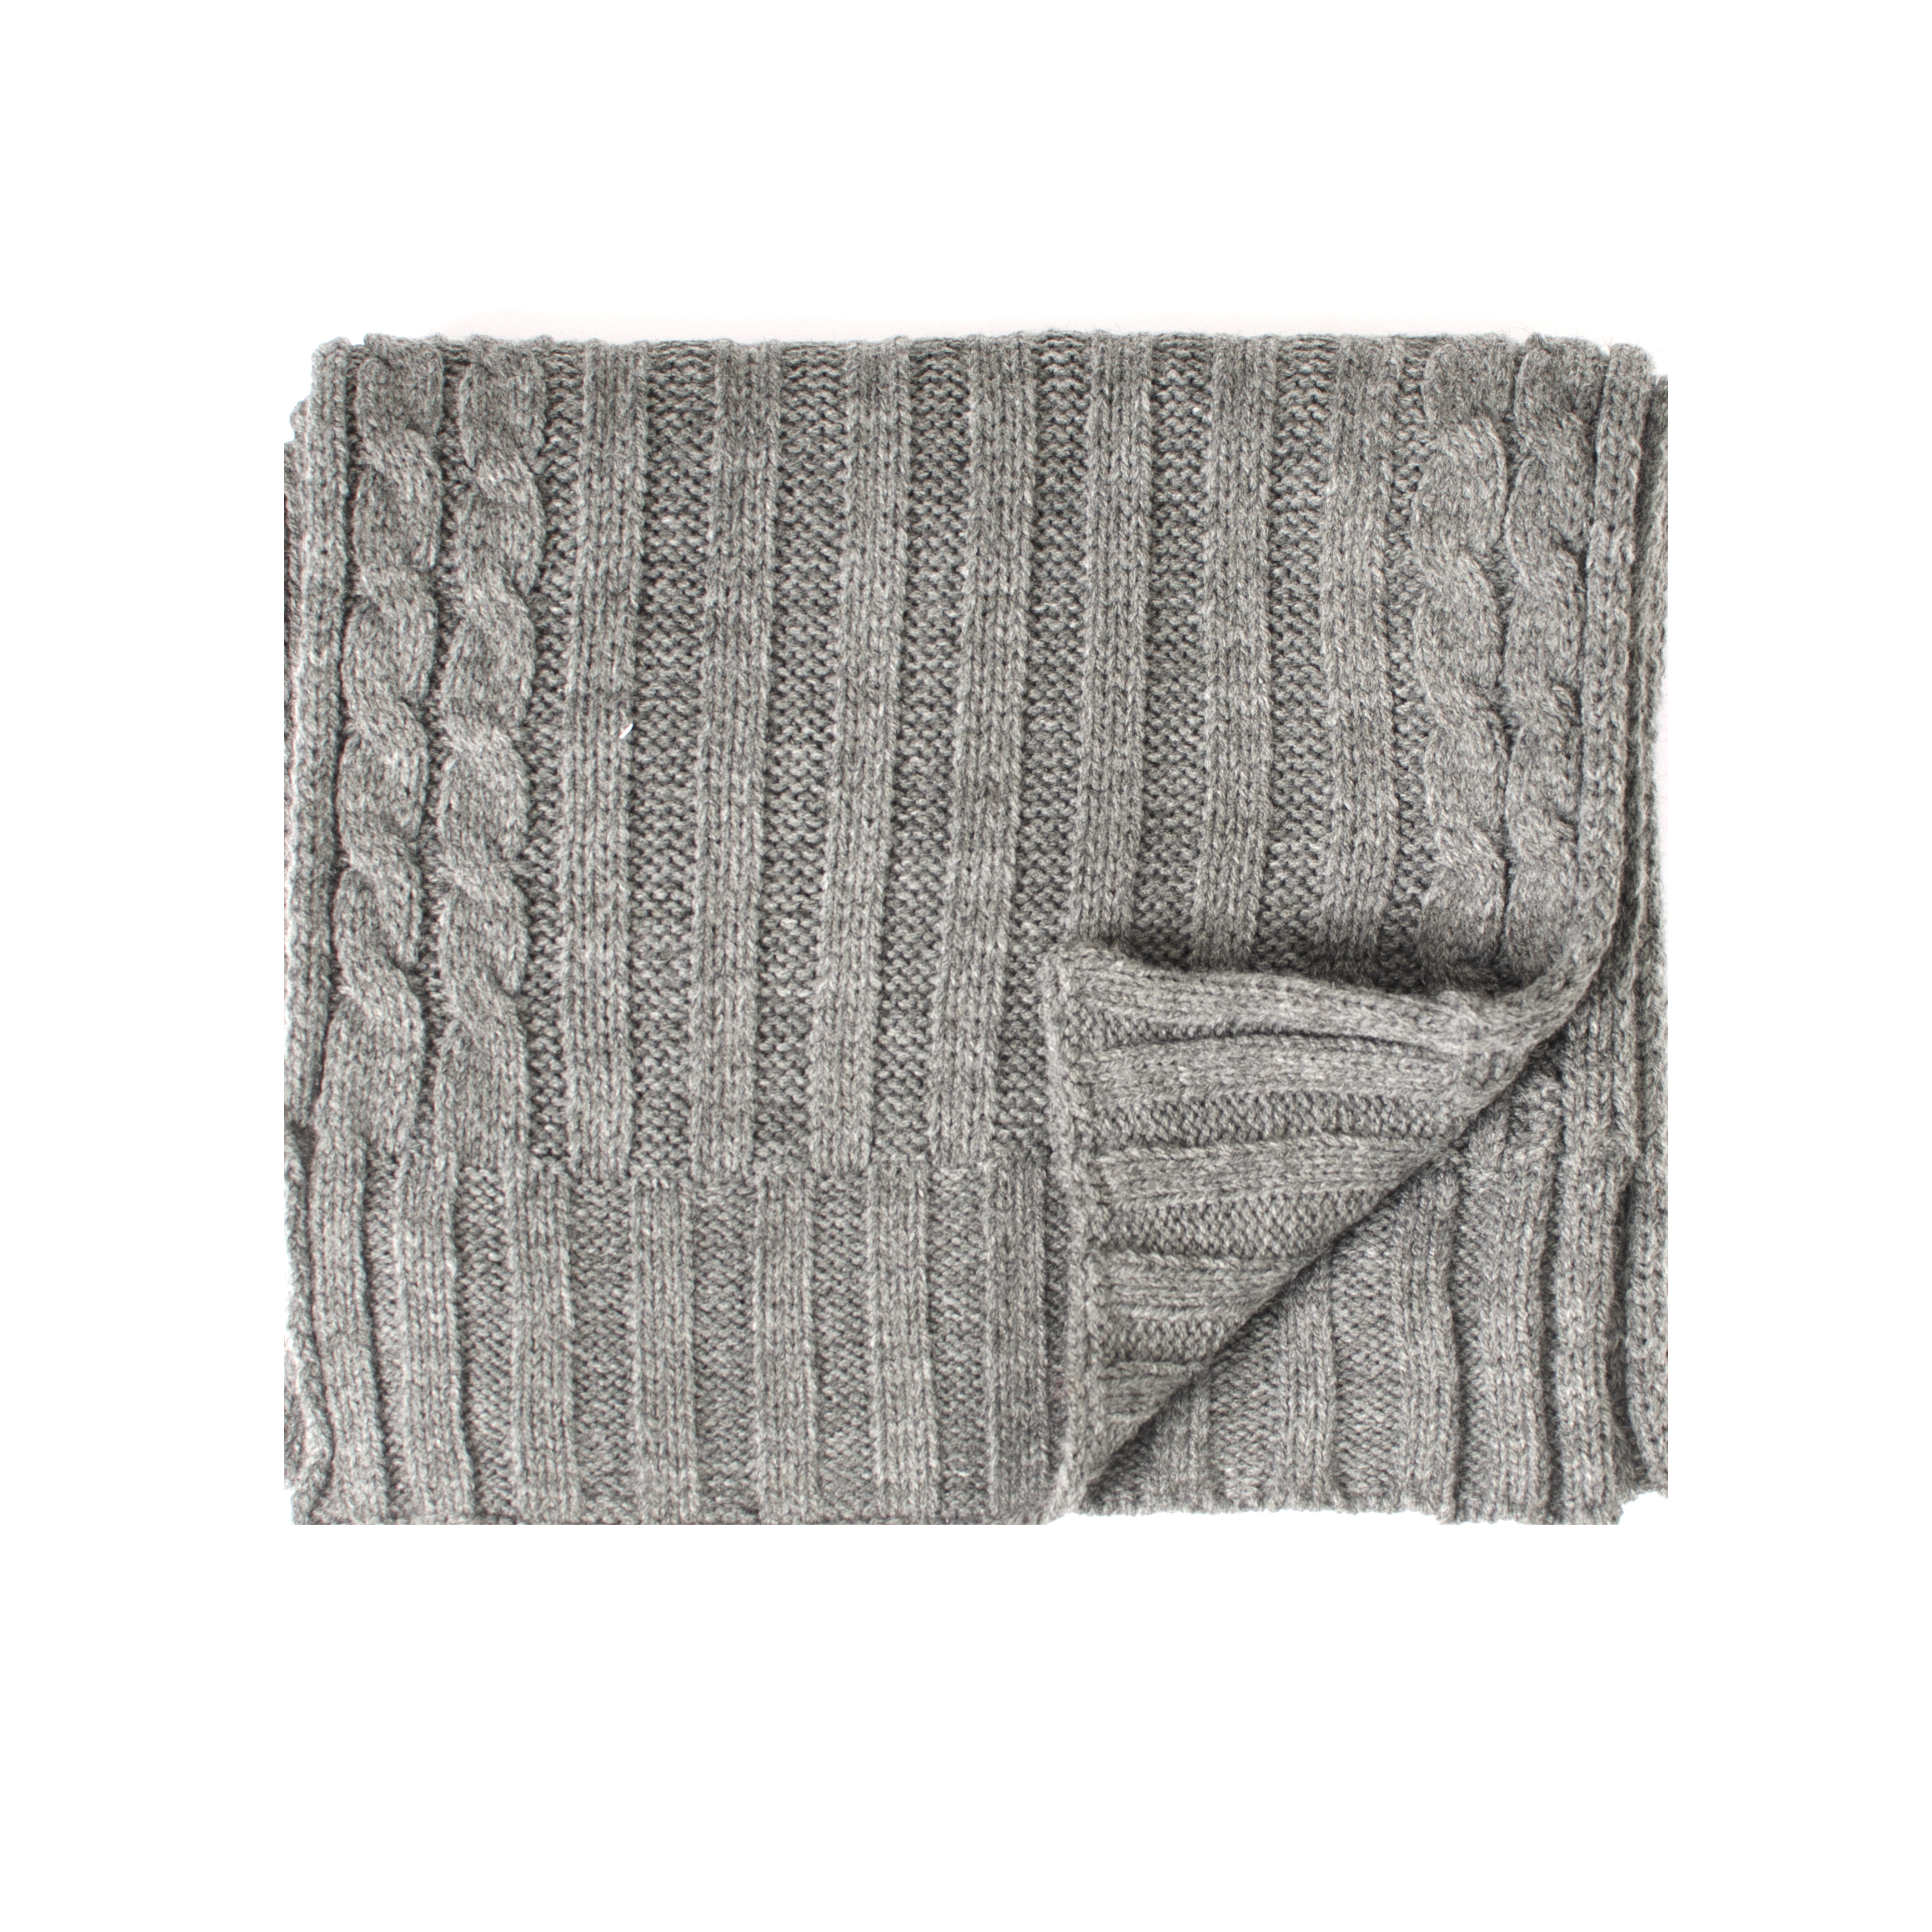 Josh | Scarf cable knitted in grey